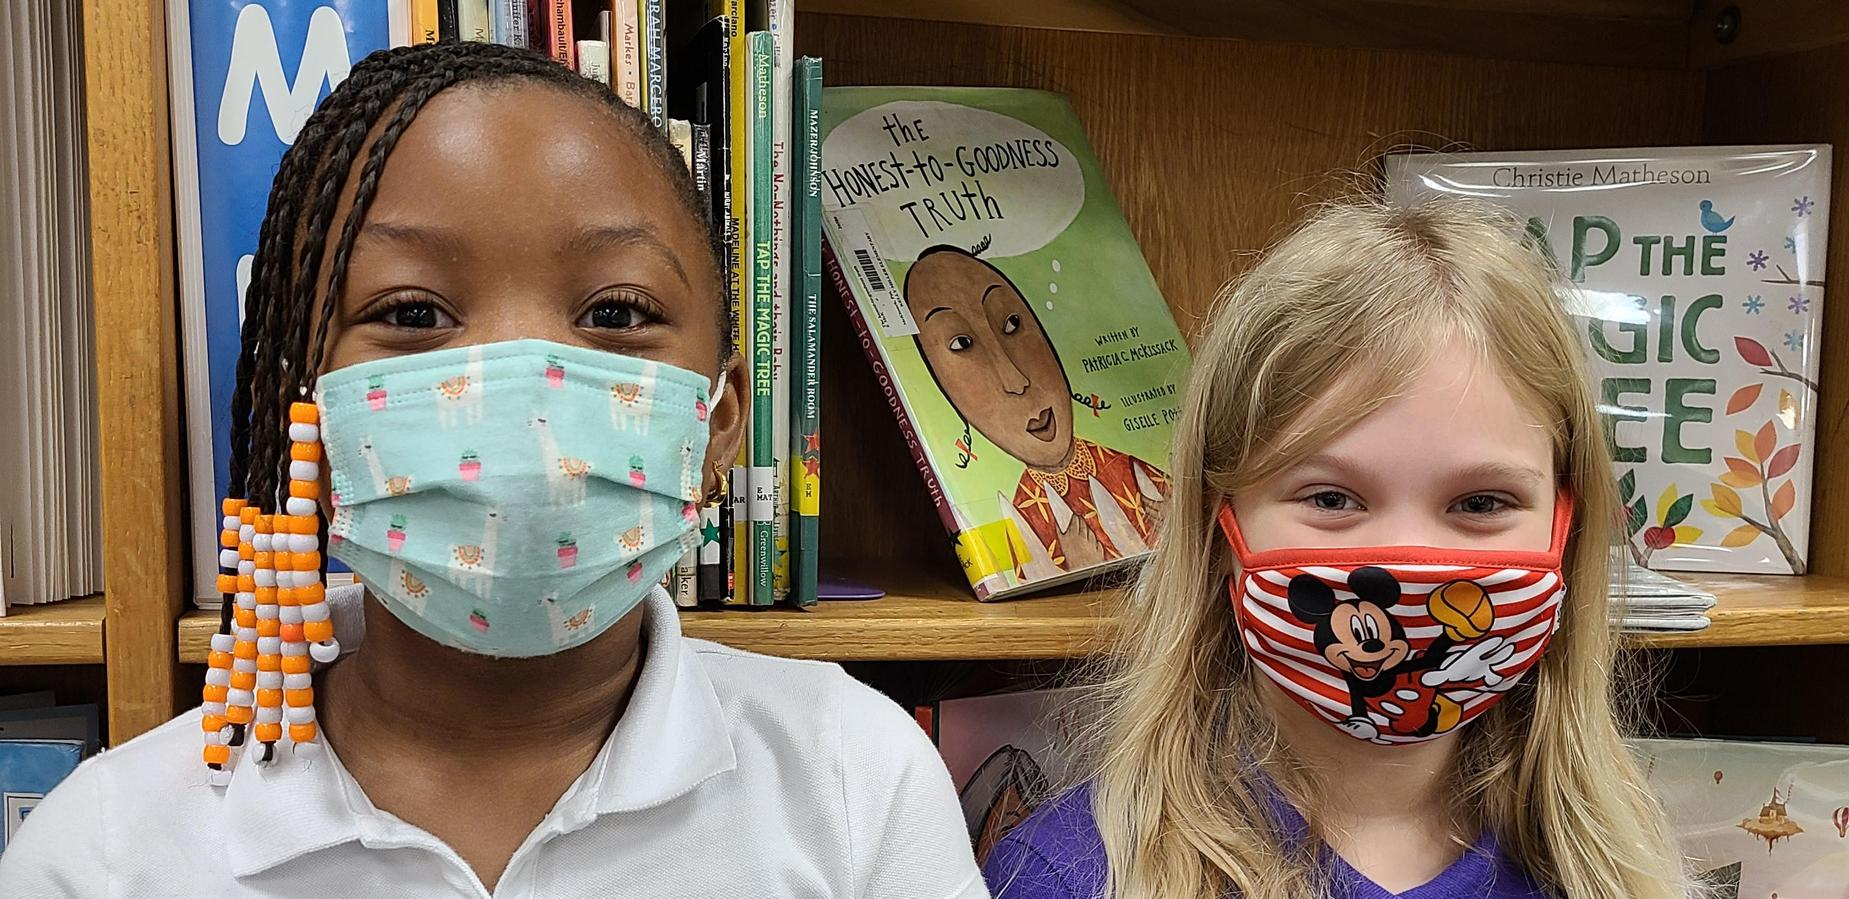 2nd graders in the library